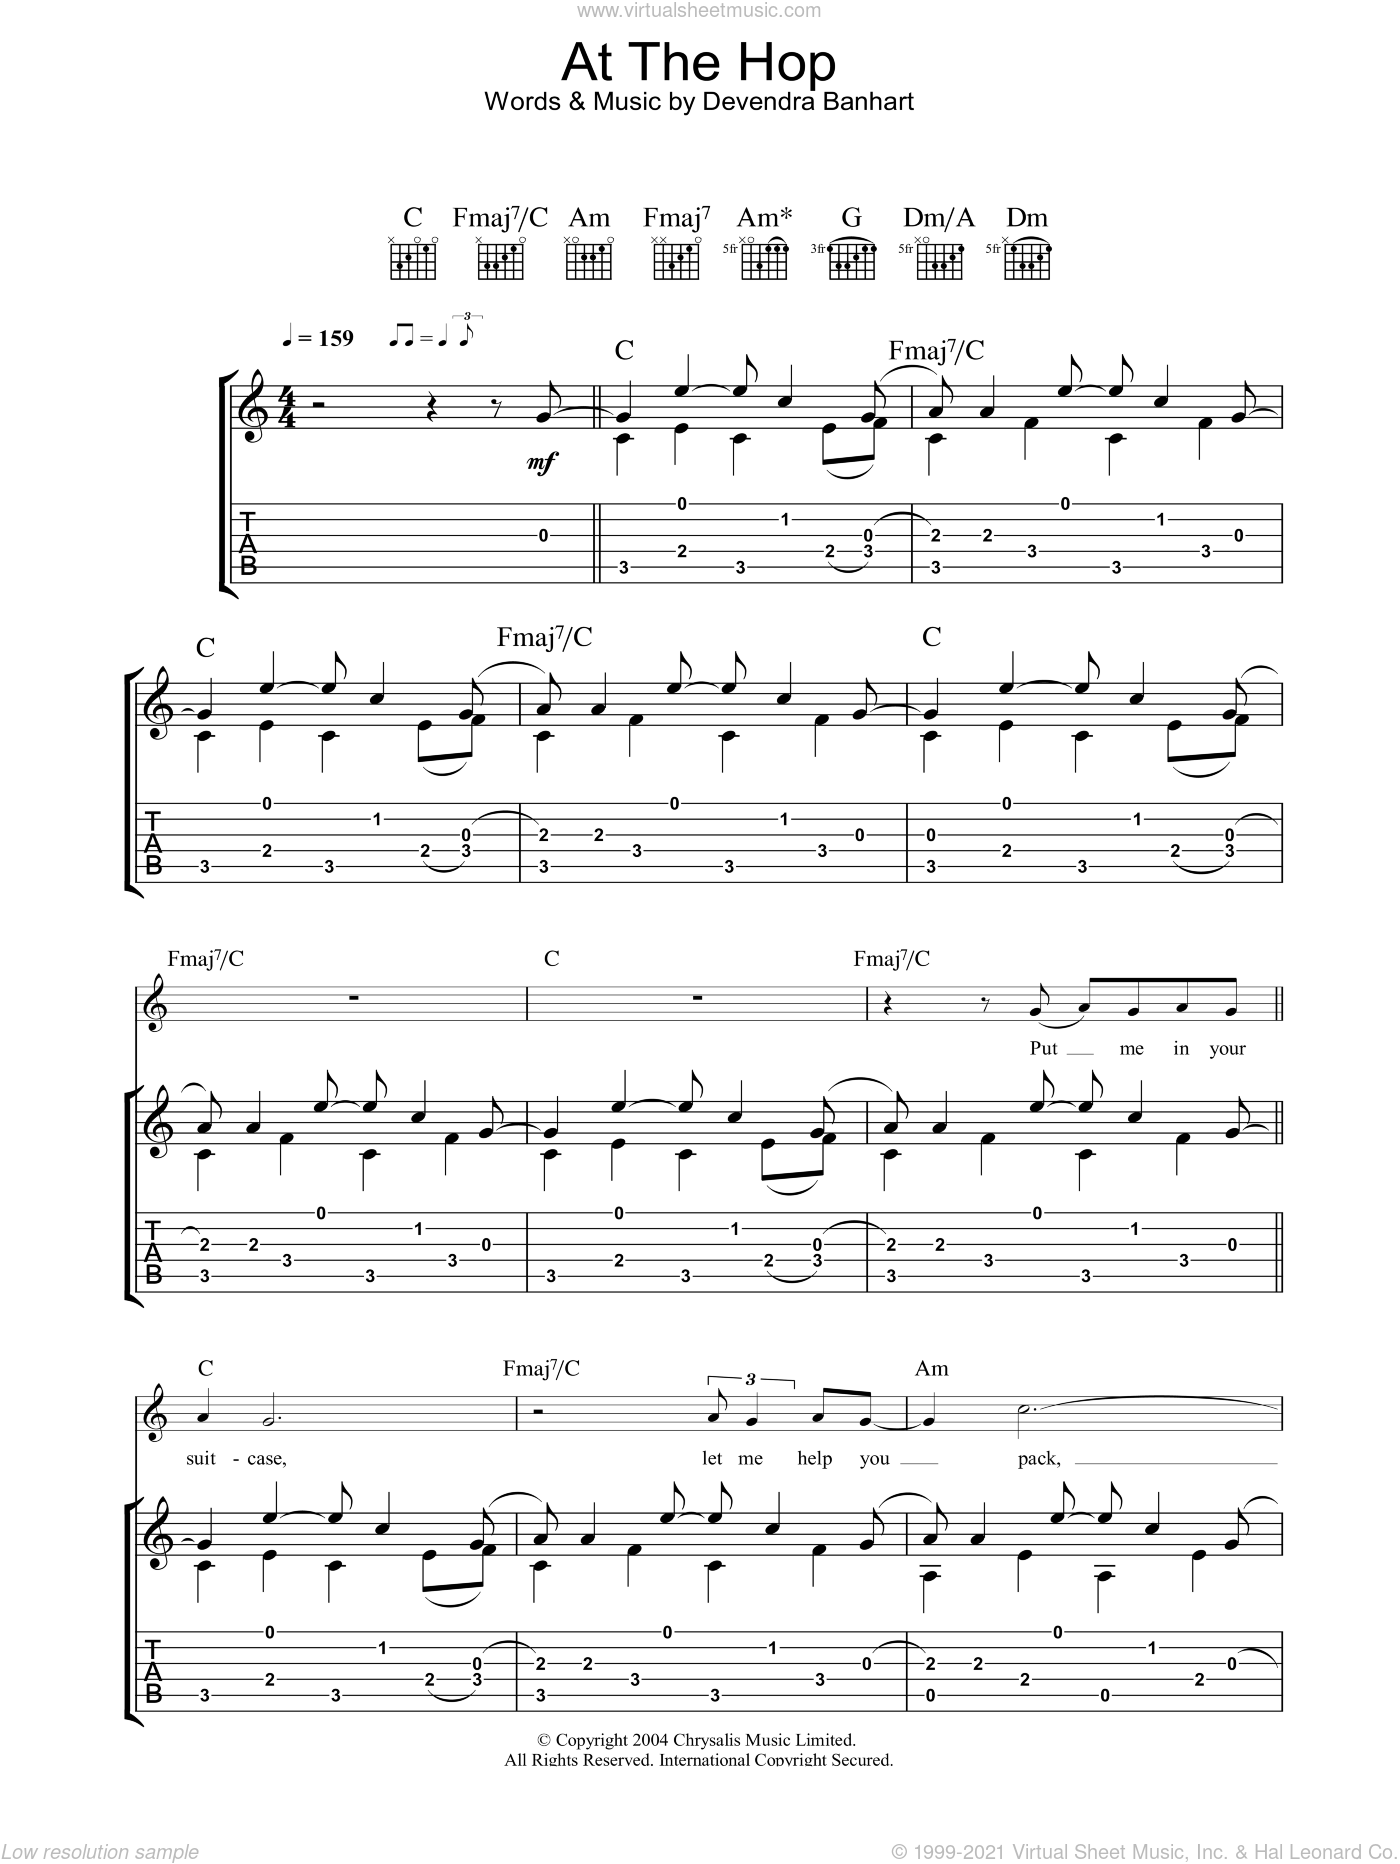 At The Hop sheet music for guitar (tablature) by Devendra Banhart. Score Image Preview.